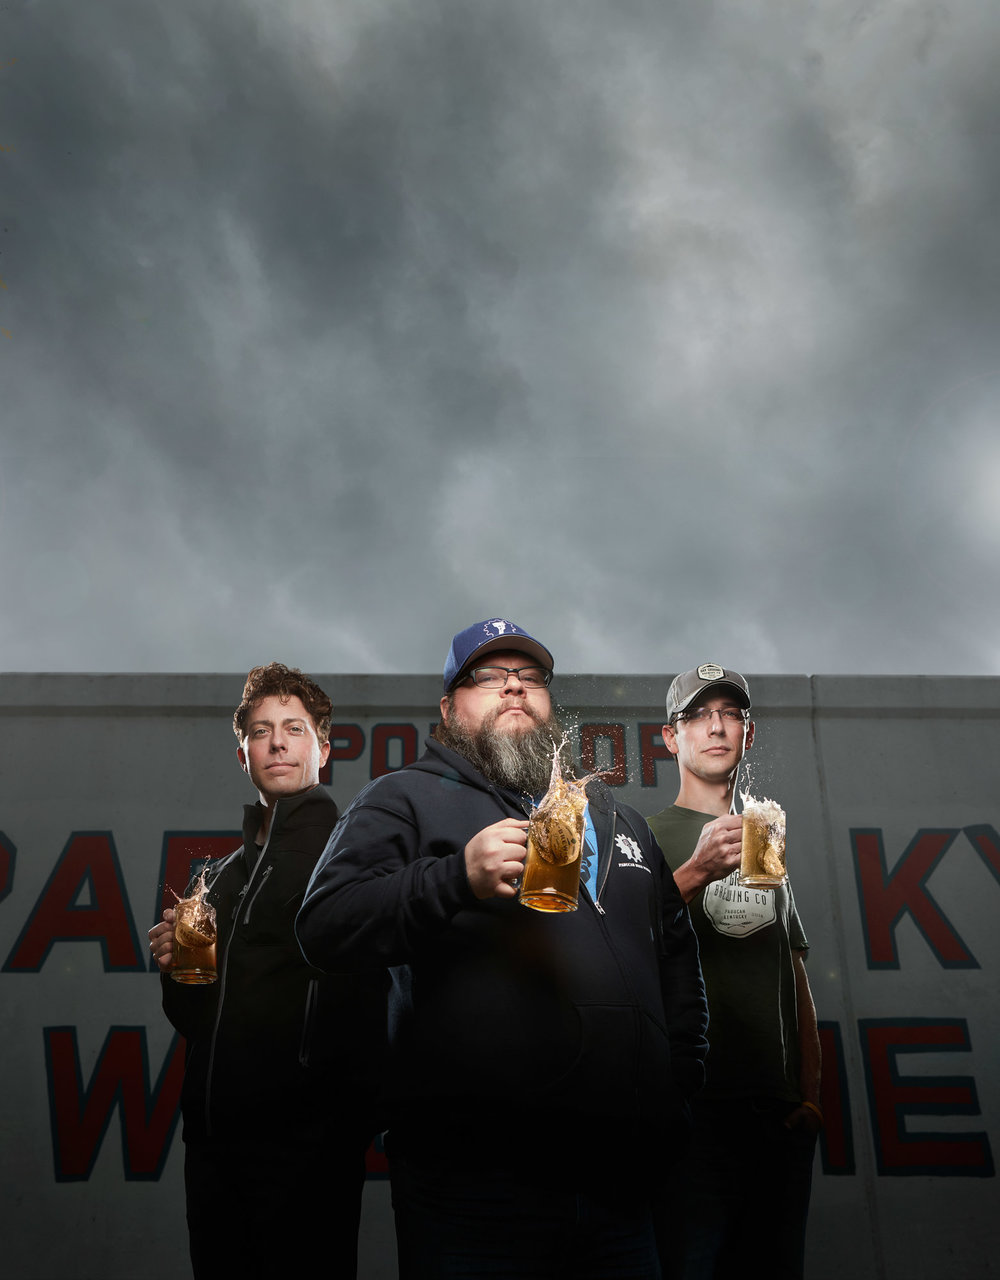 Cover photography for the April/ May 2016 issue of Score Magazine. Pictured from left to right is Daniel Sene with PSO, Todd Blume of Paducah Beer Werks, and Edward Musselman of Dry Ground Brewing.